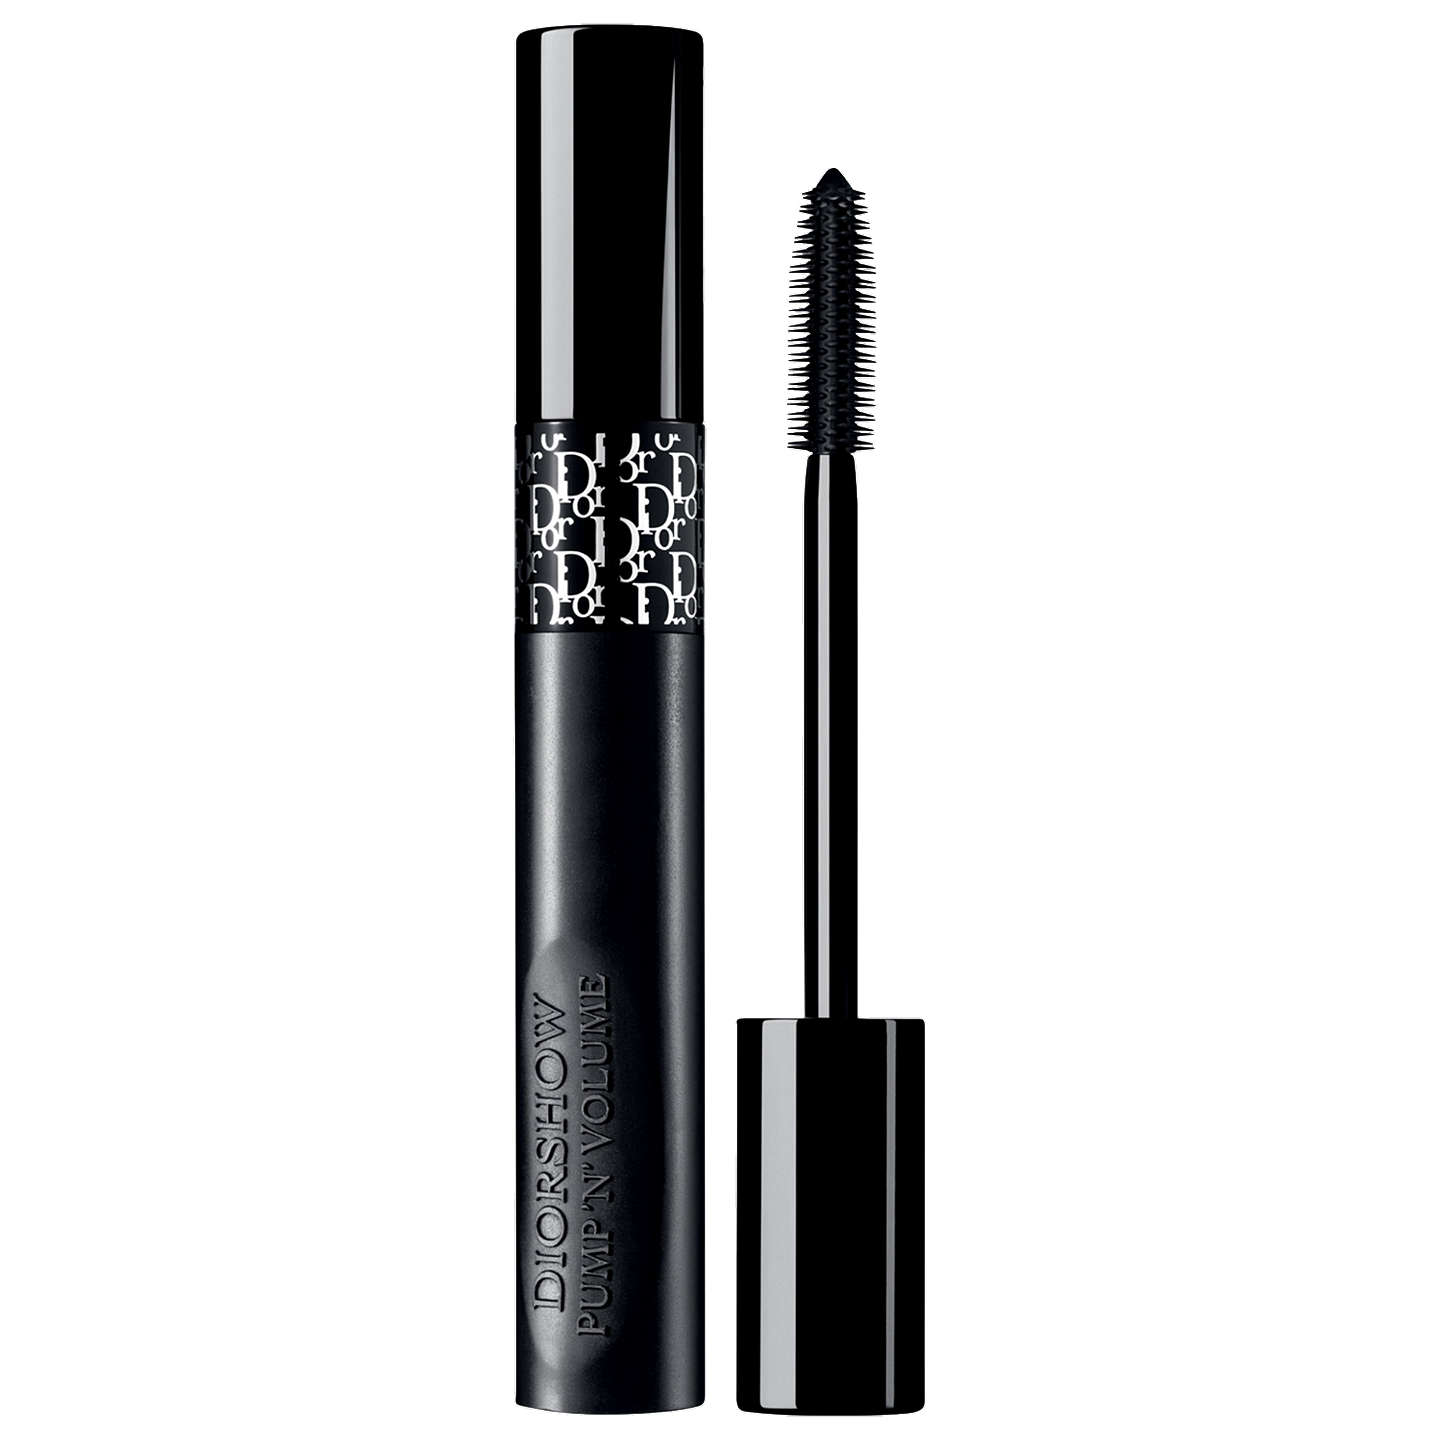 BuyDior Diorshow Pump 'N' Volume Mascara, Black 090 Online at johnlewis.com